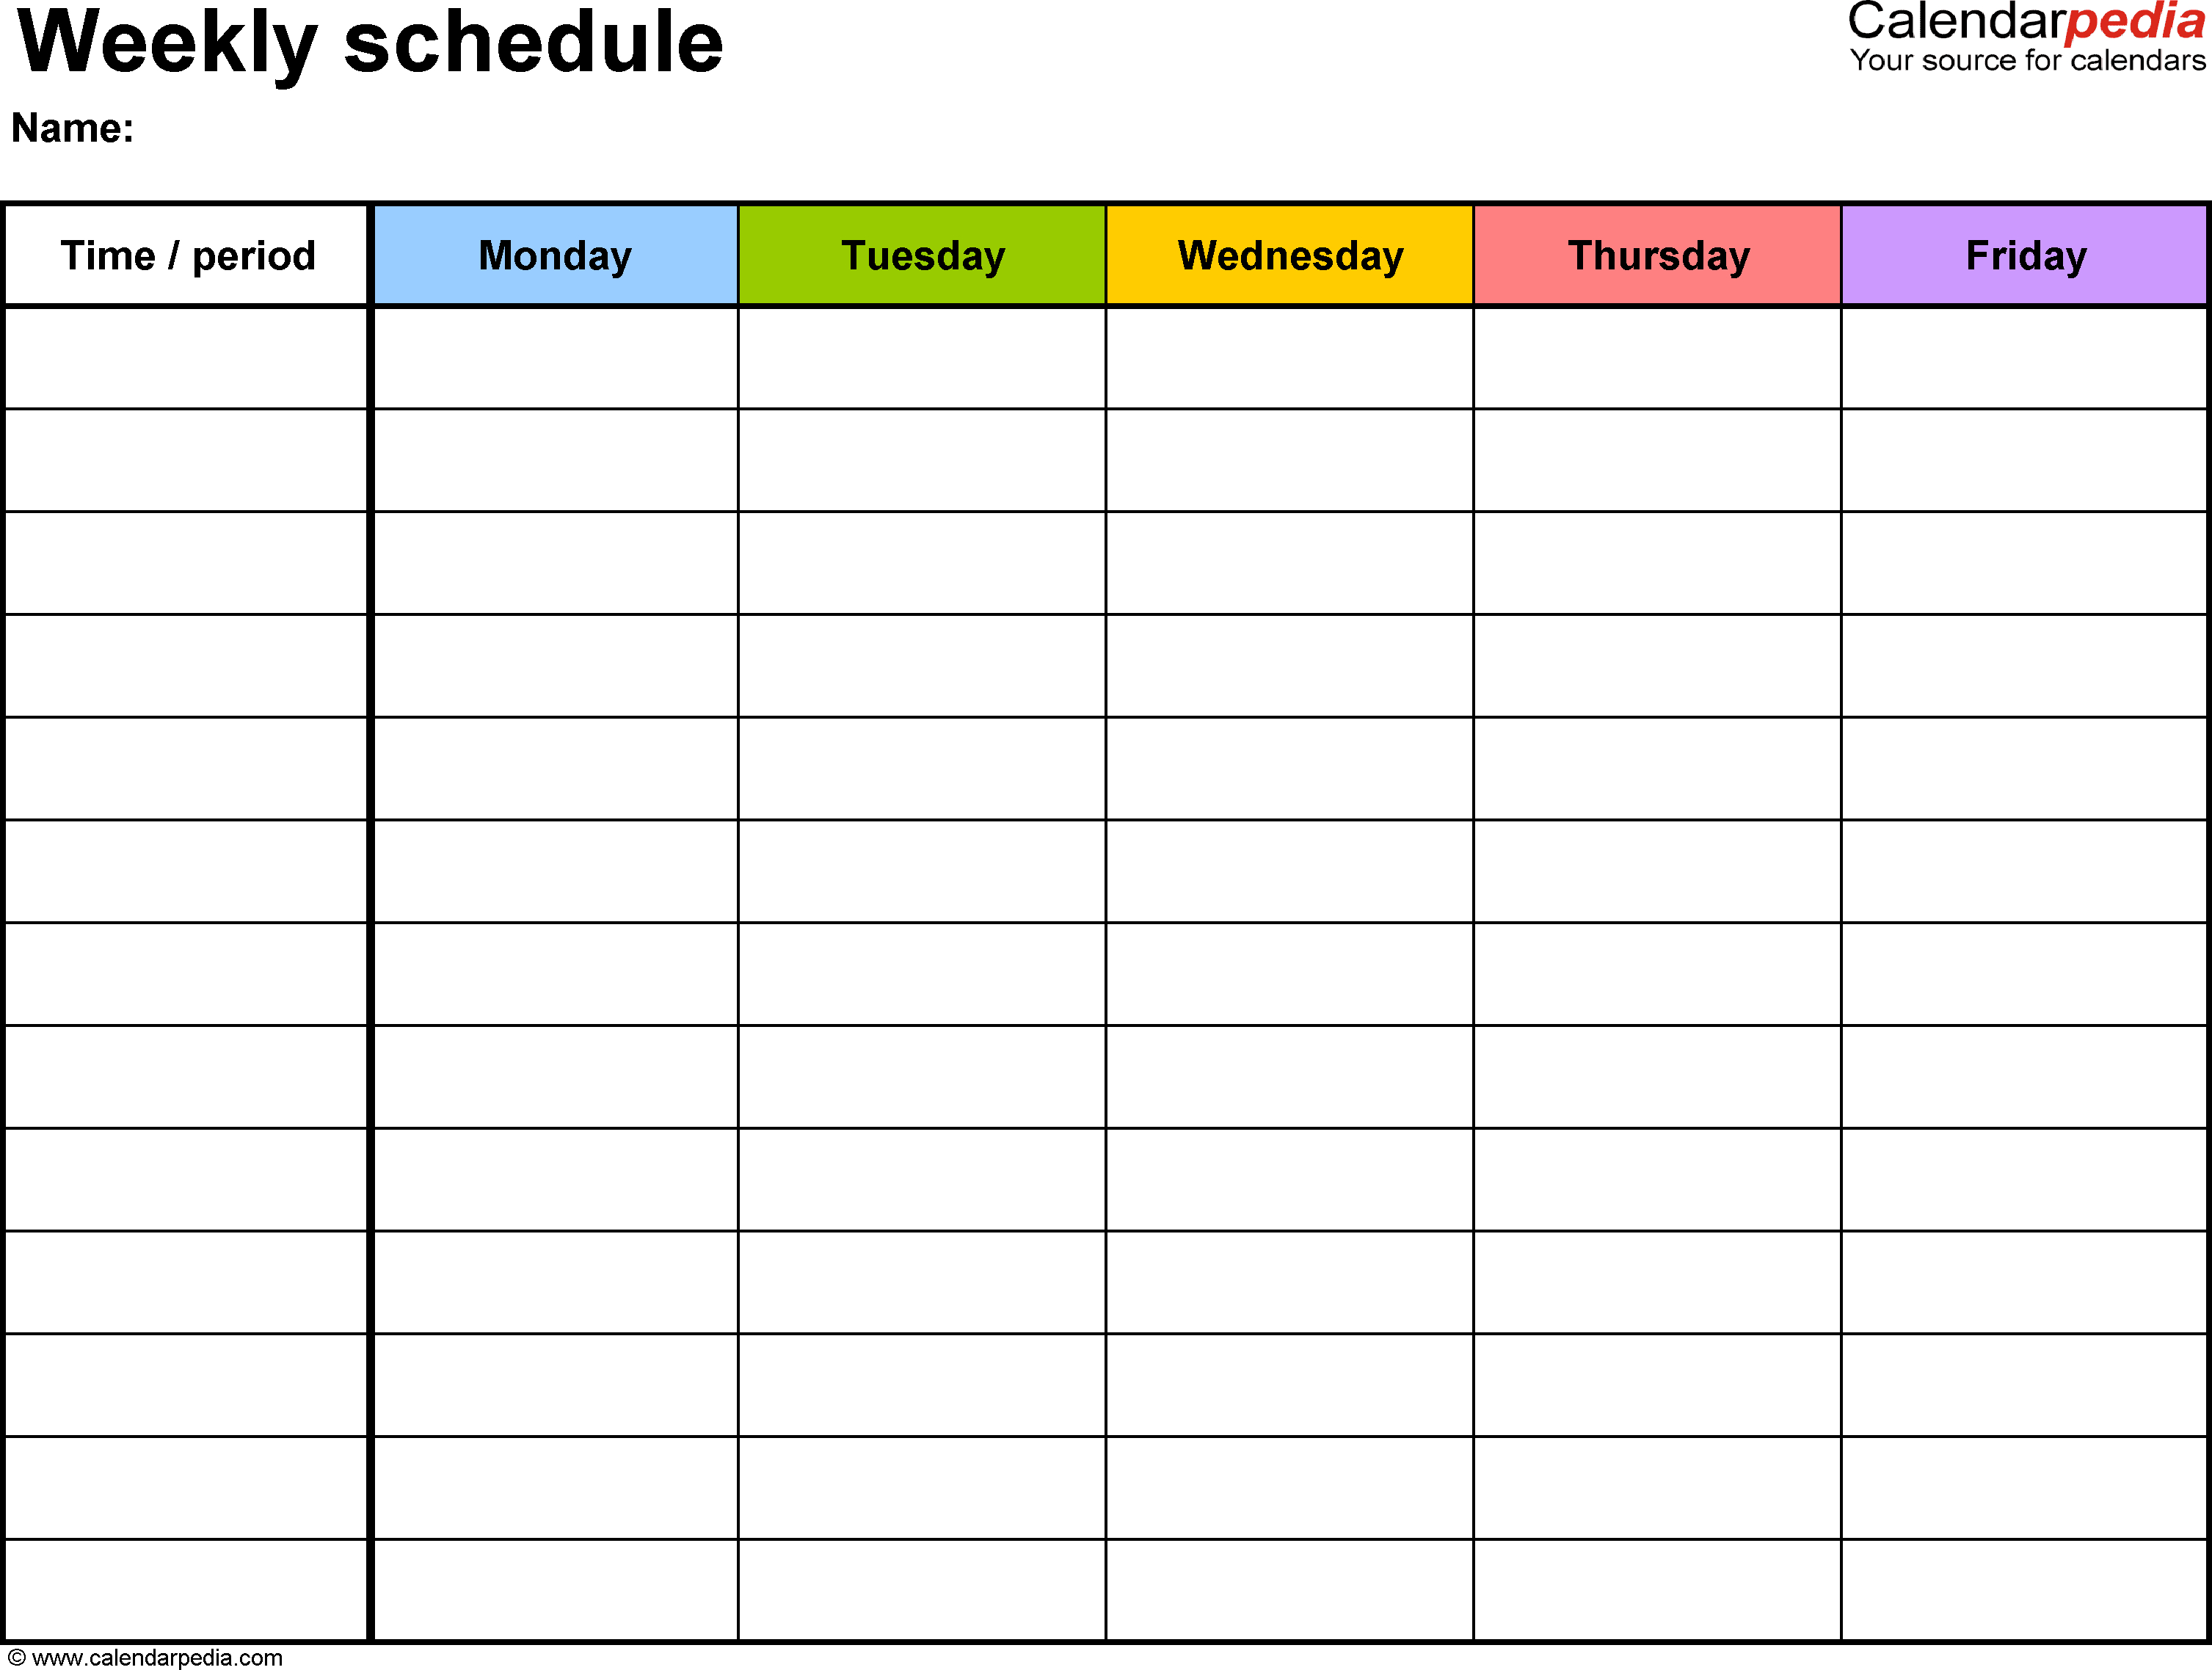 Weekly Calendar Templates Free - Colona.rsd7